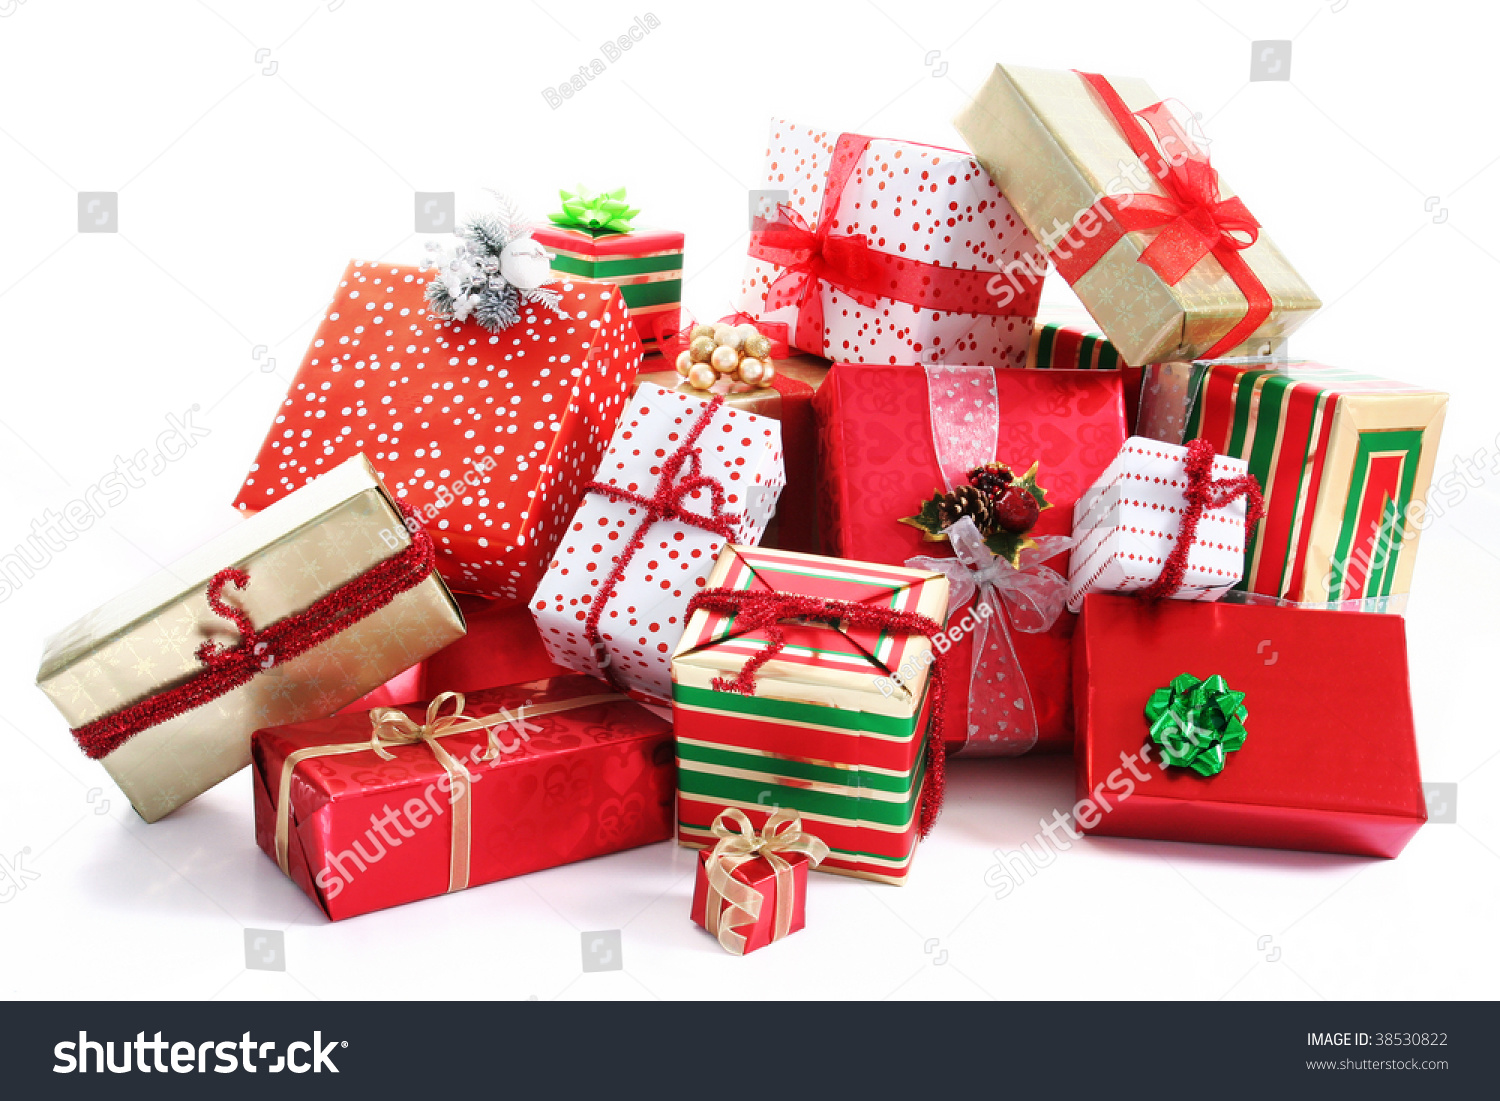 Pile christmas gifts colorful wrapping ribbons stock photo